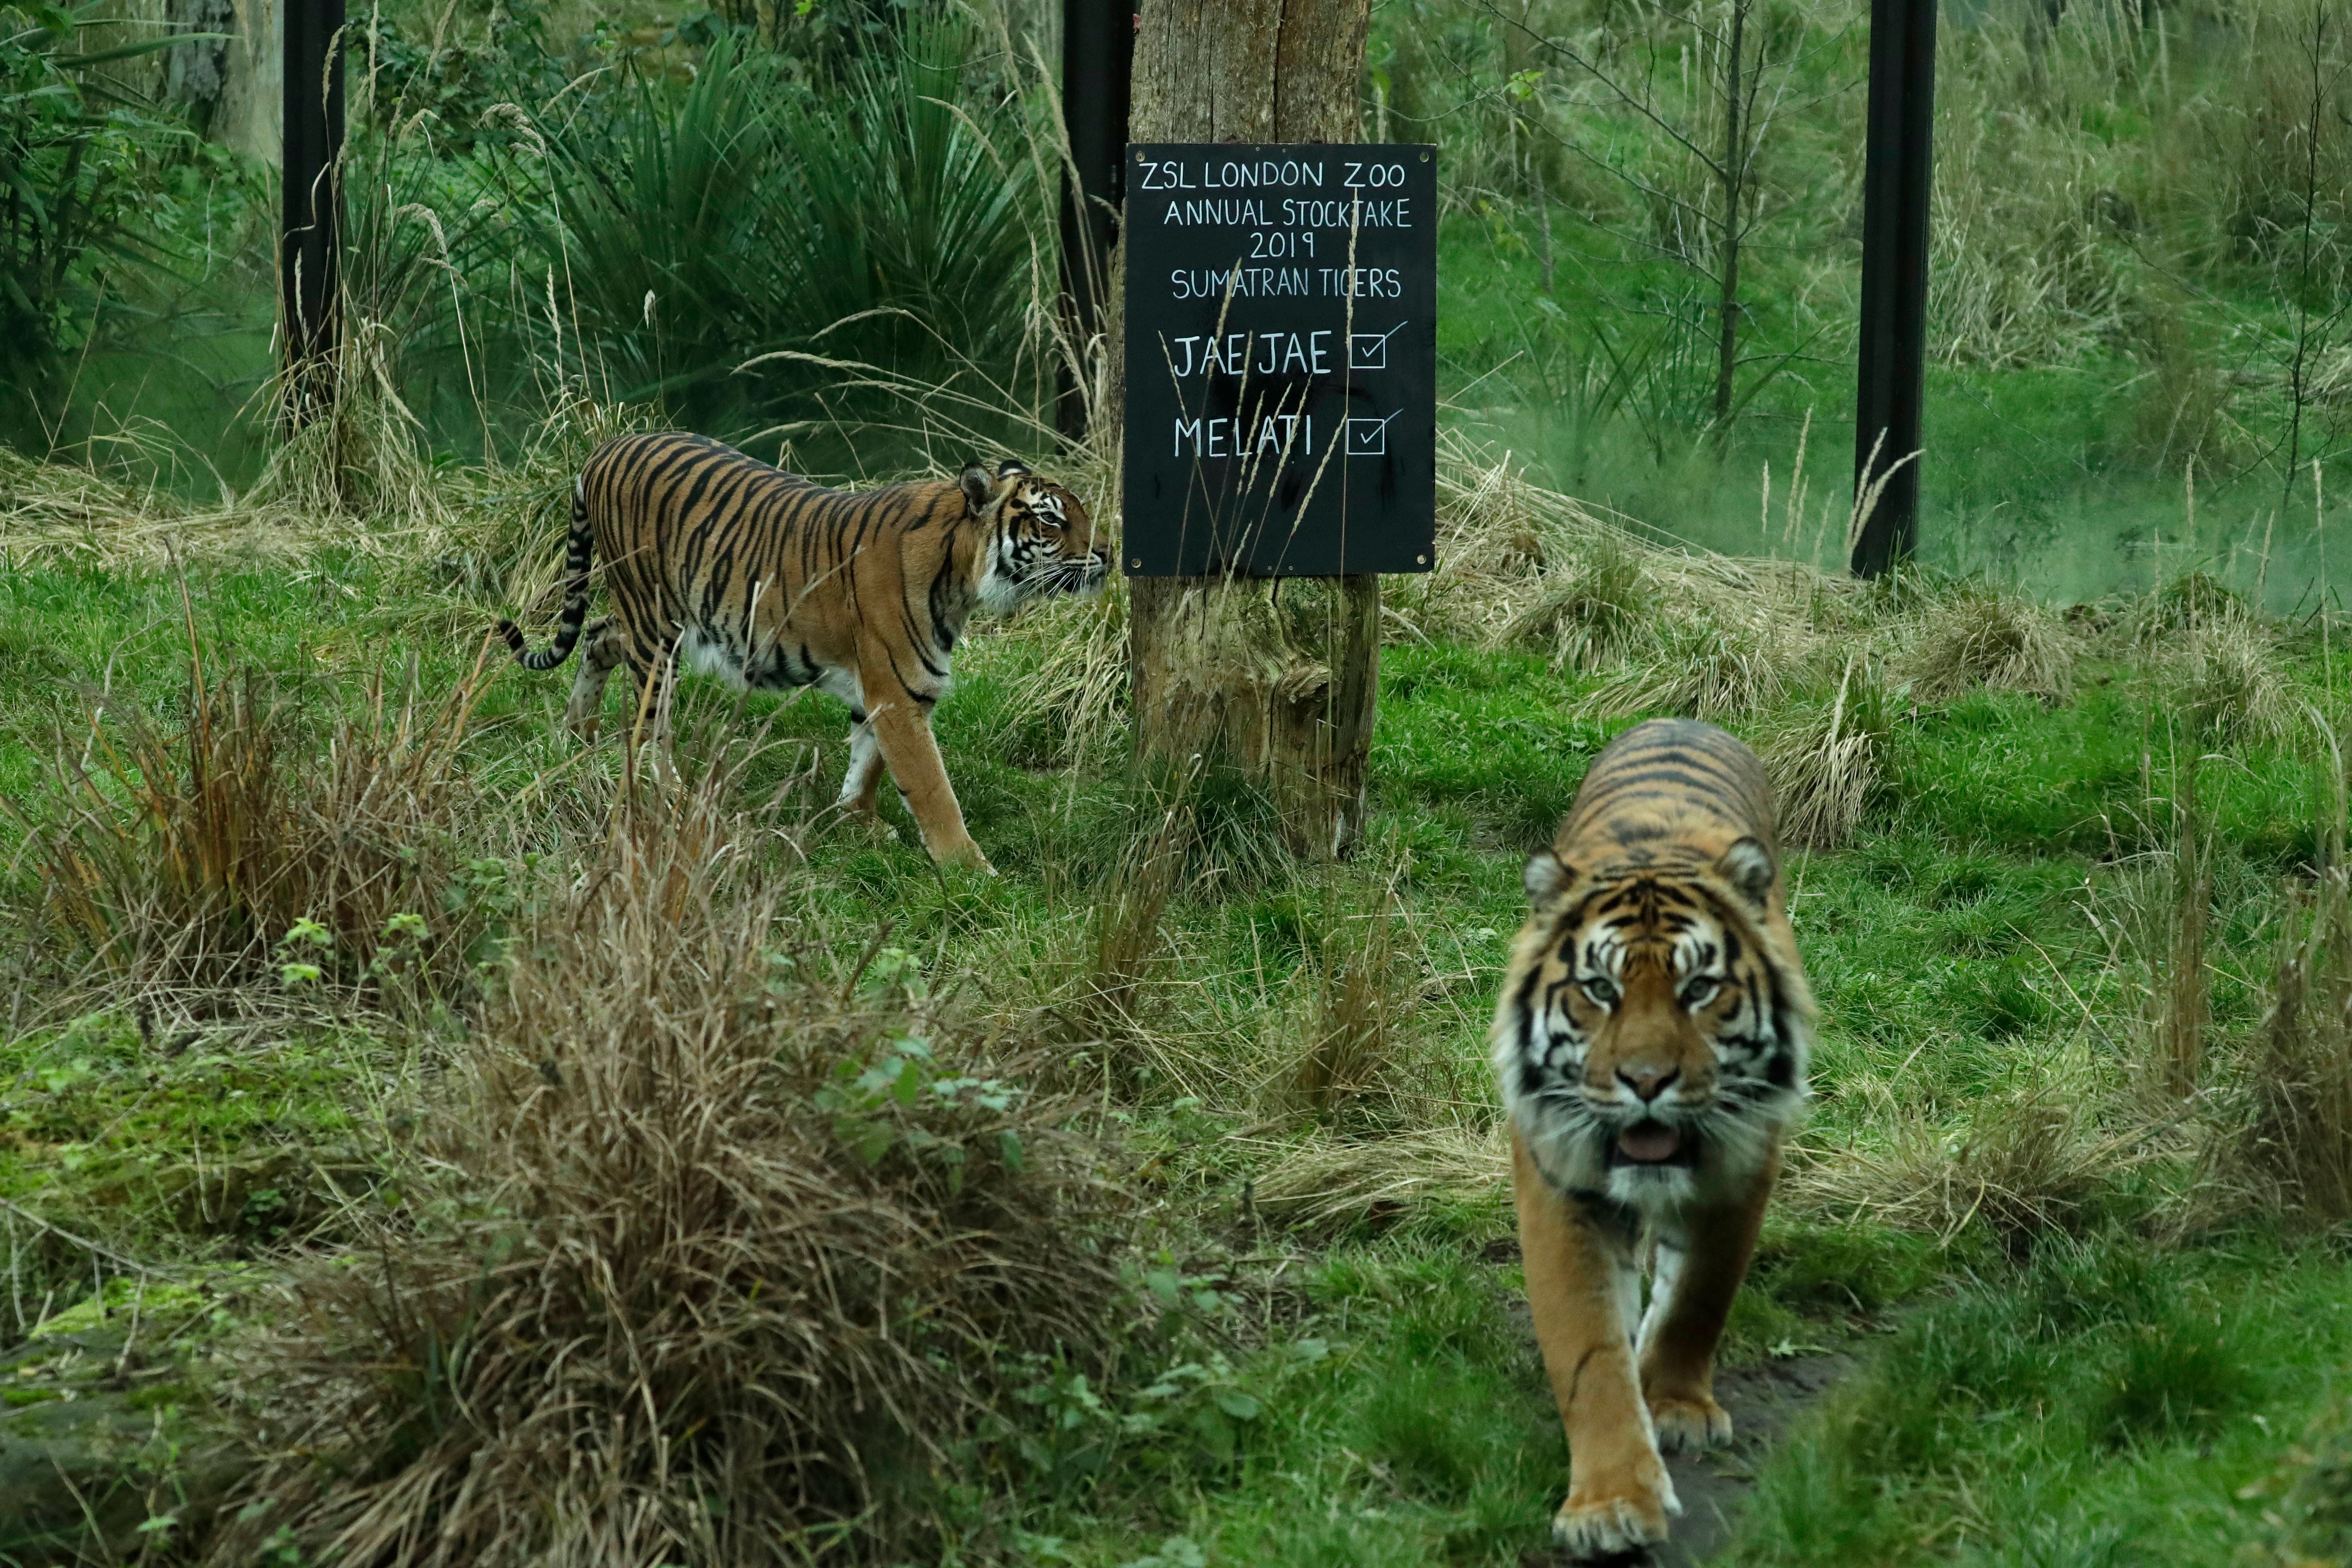 Endangered tiger killed by potential mate in zoo tragedy